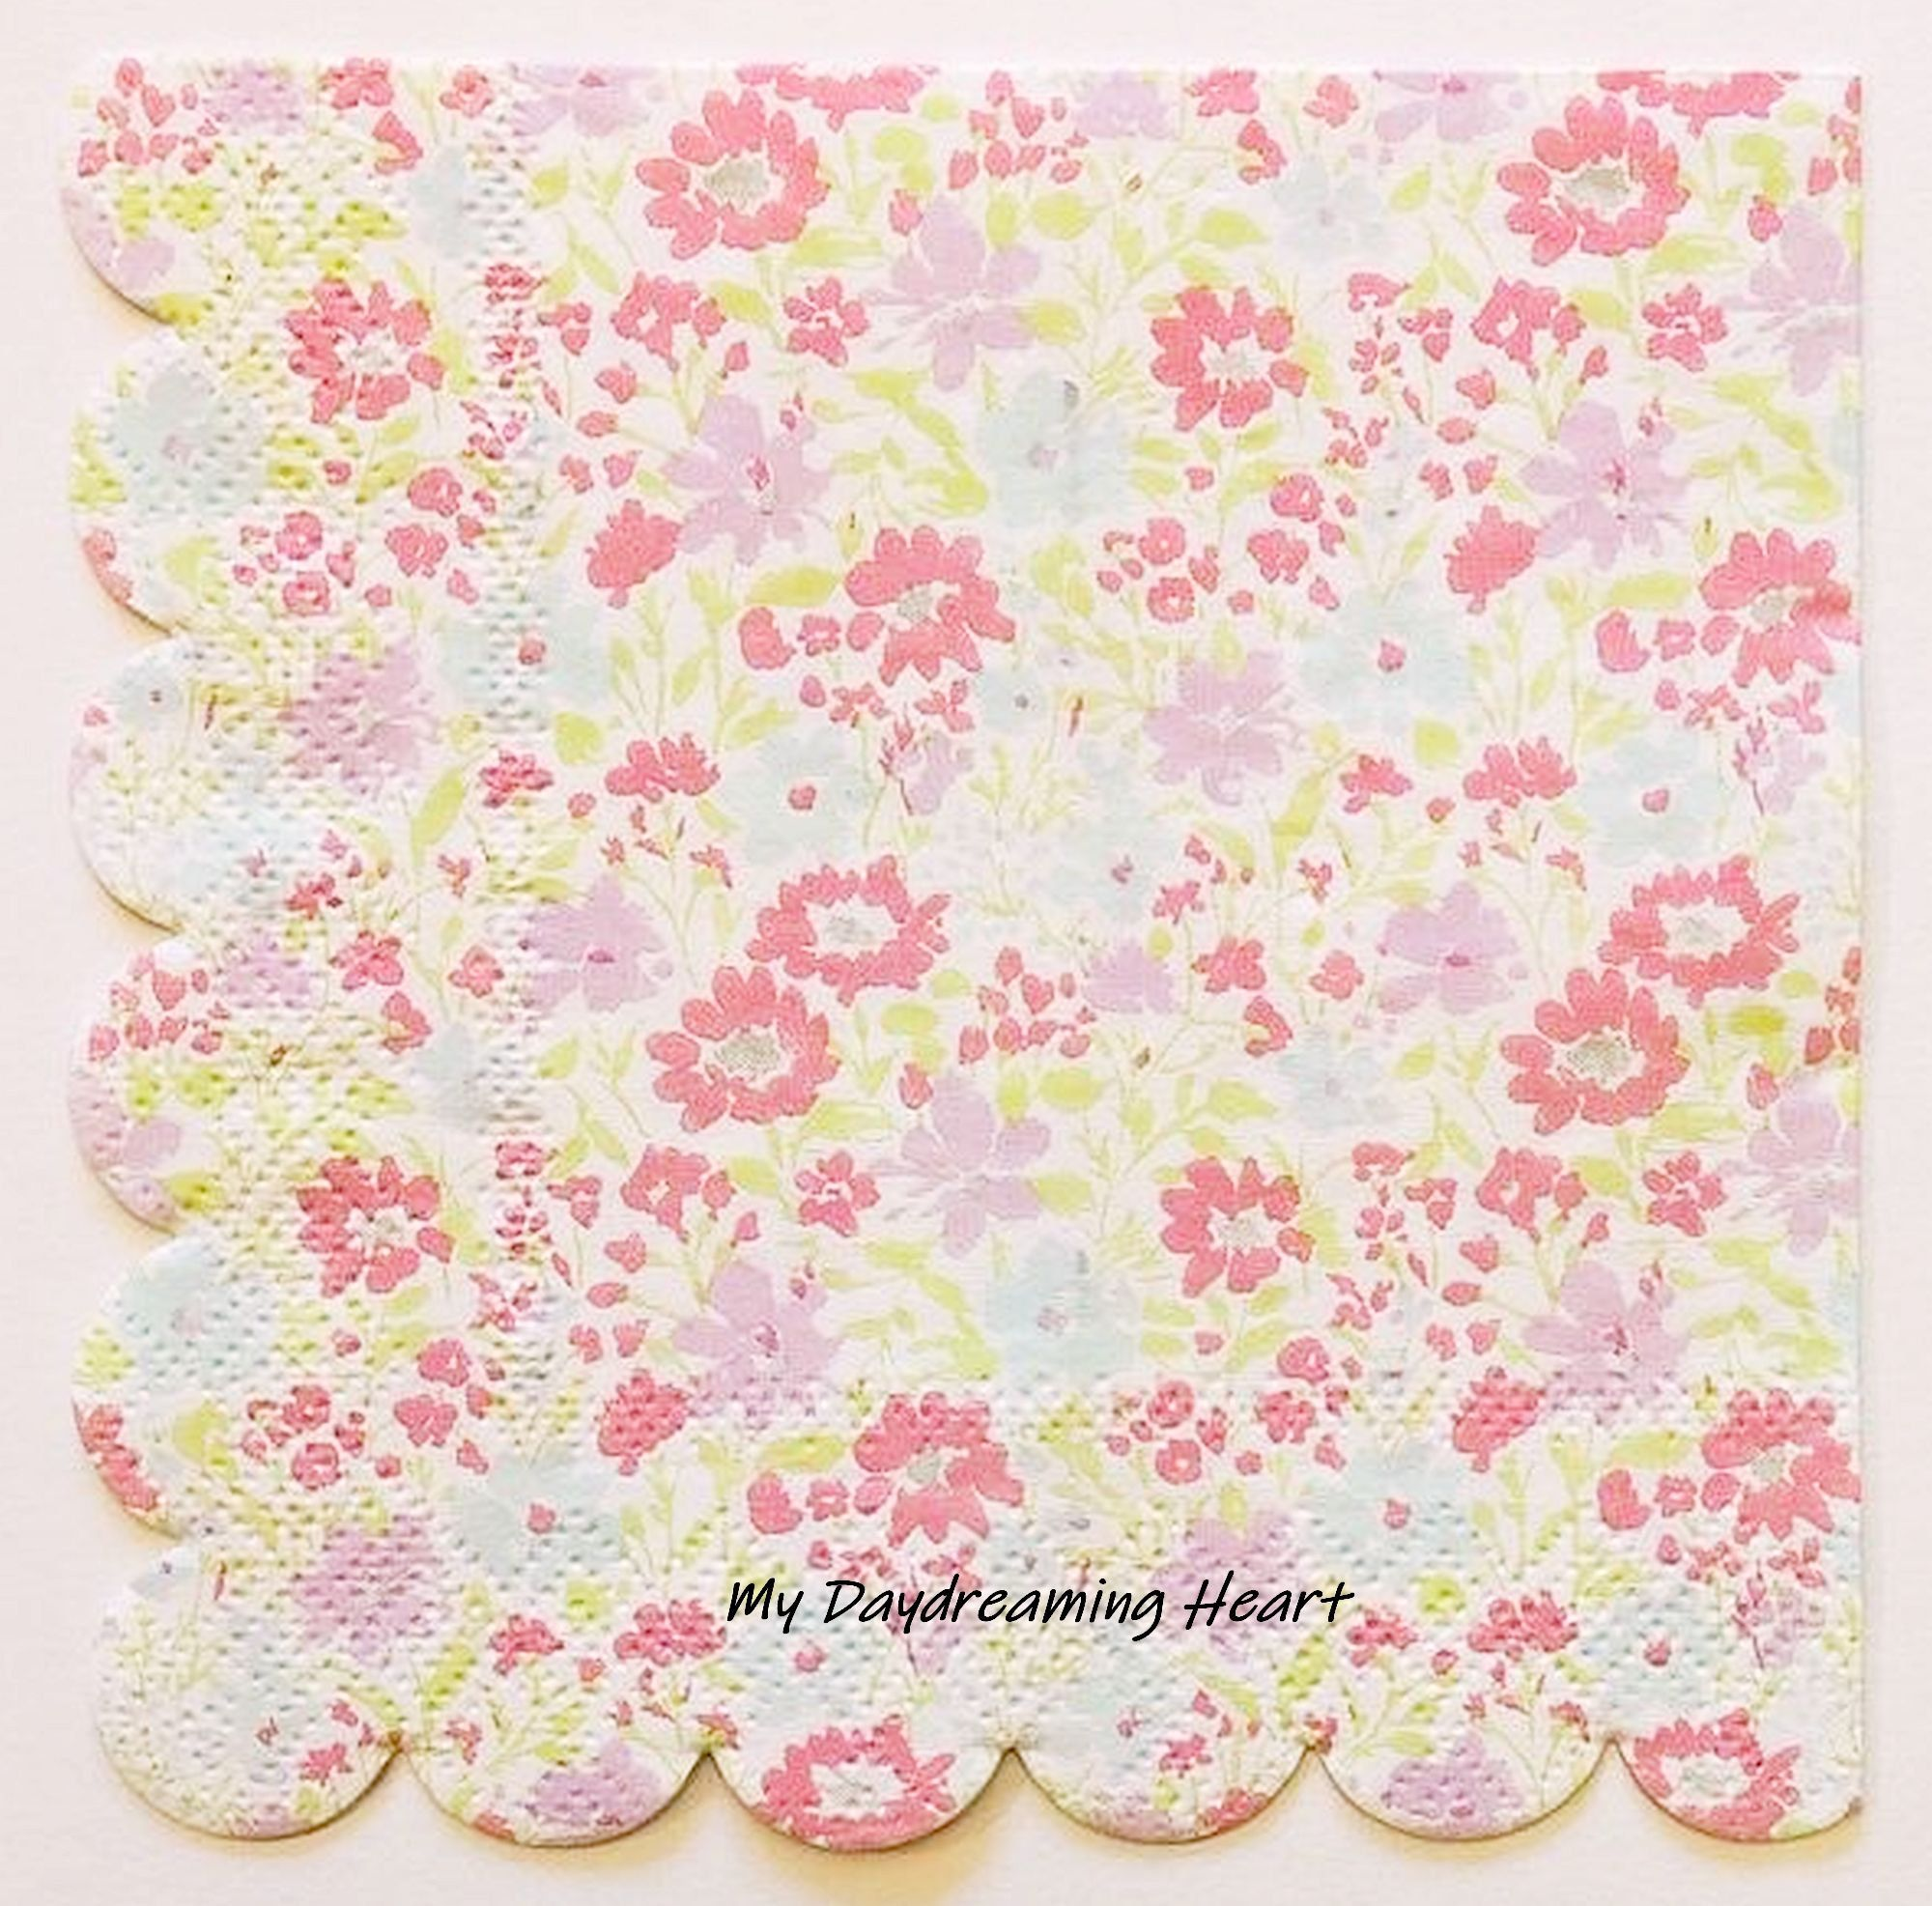 4 x Paper Napkins Hearts   for DECOUPAGE and CRAFT-59